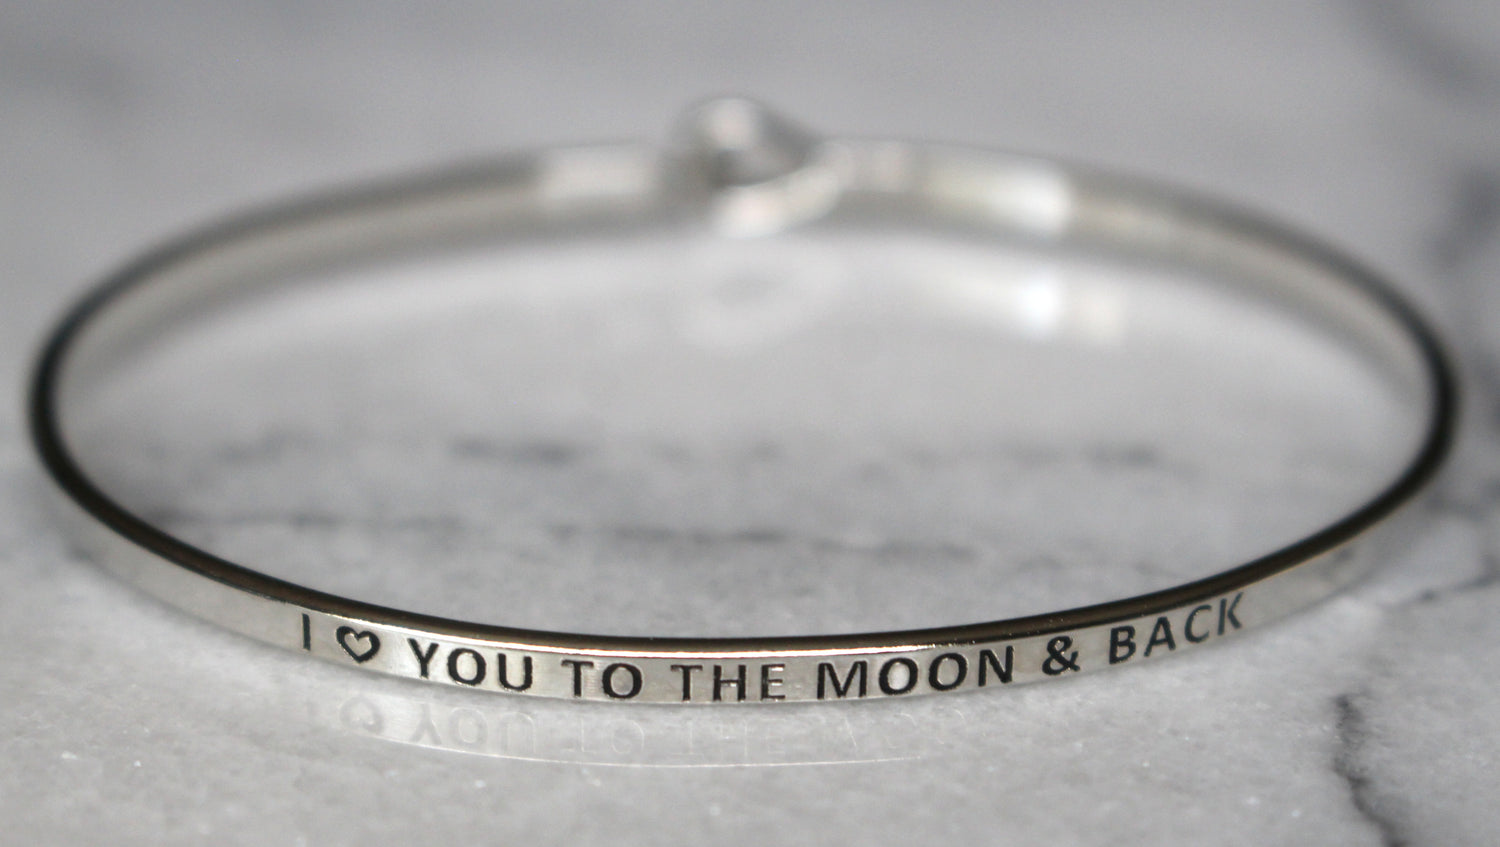 'I Love You To The Moon & Back' Dainty Bangle Bracelet-Silver